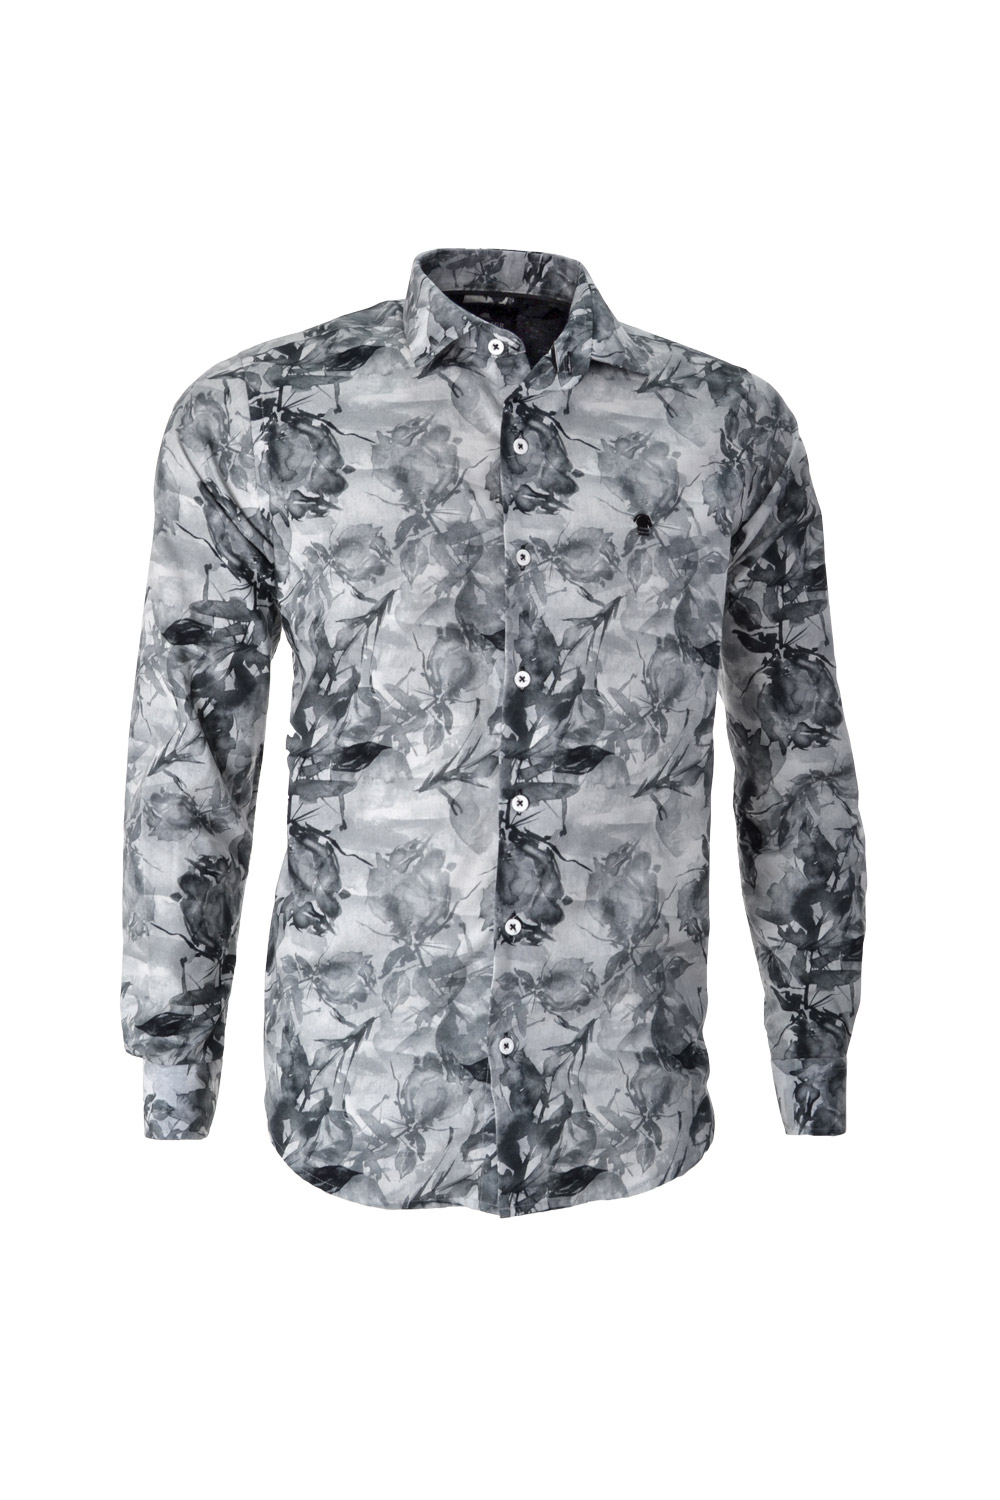 CAMISA ML FASHION ALGODAO FIO TINTO ESTAMPA WATERCOLOR